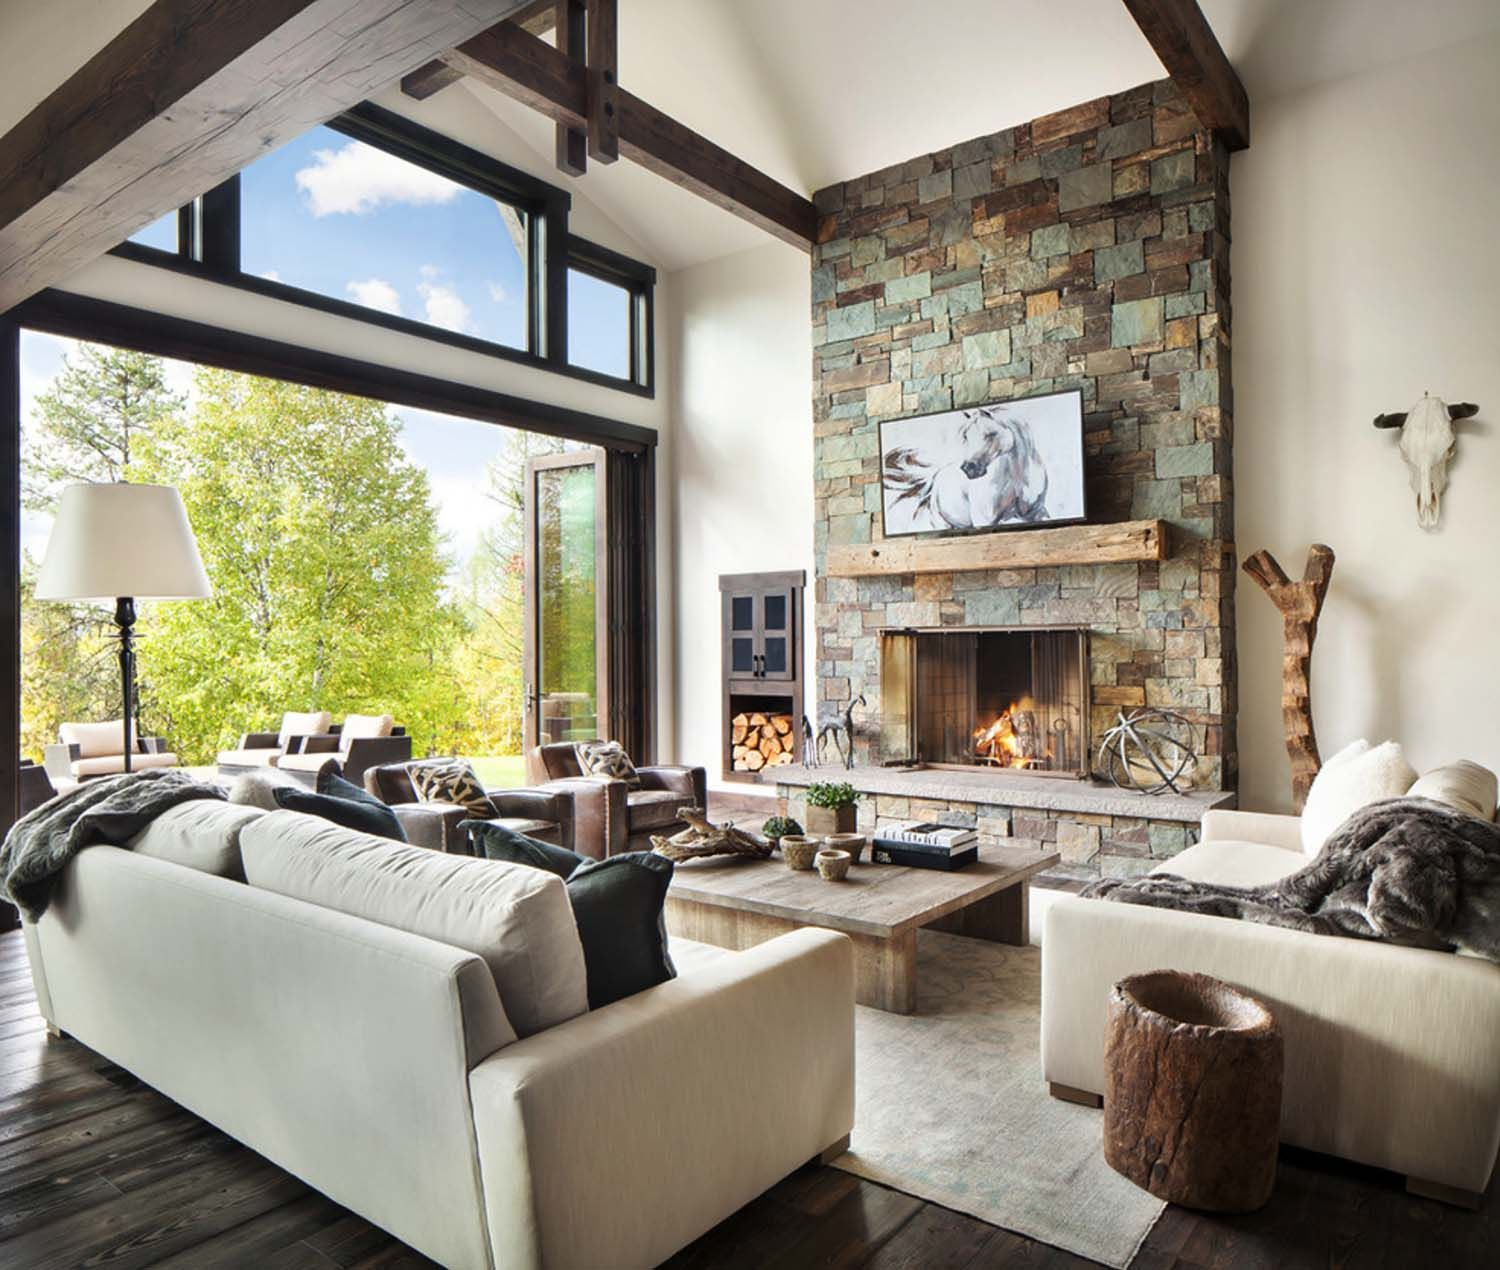 Interior Design Ideas: Rustic-modern Dwelling Nestled In The Northern Rocky